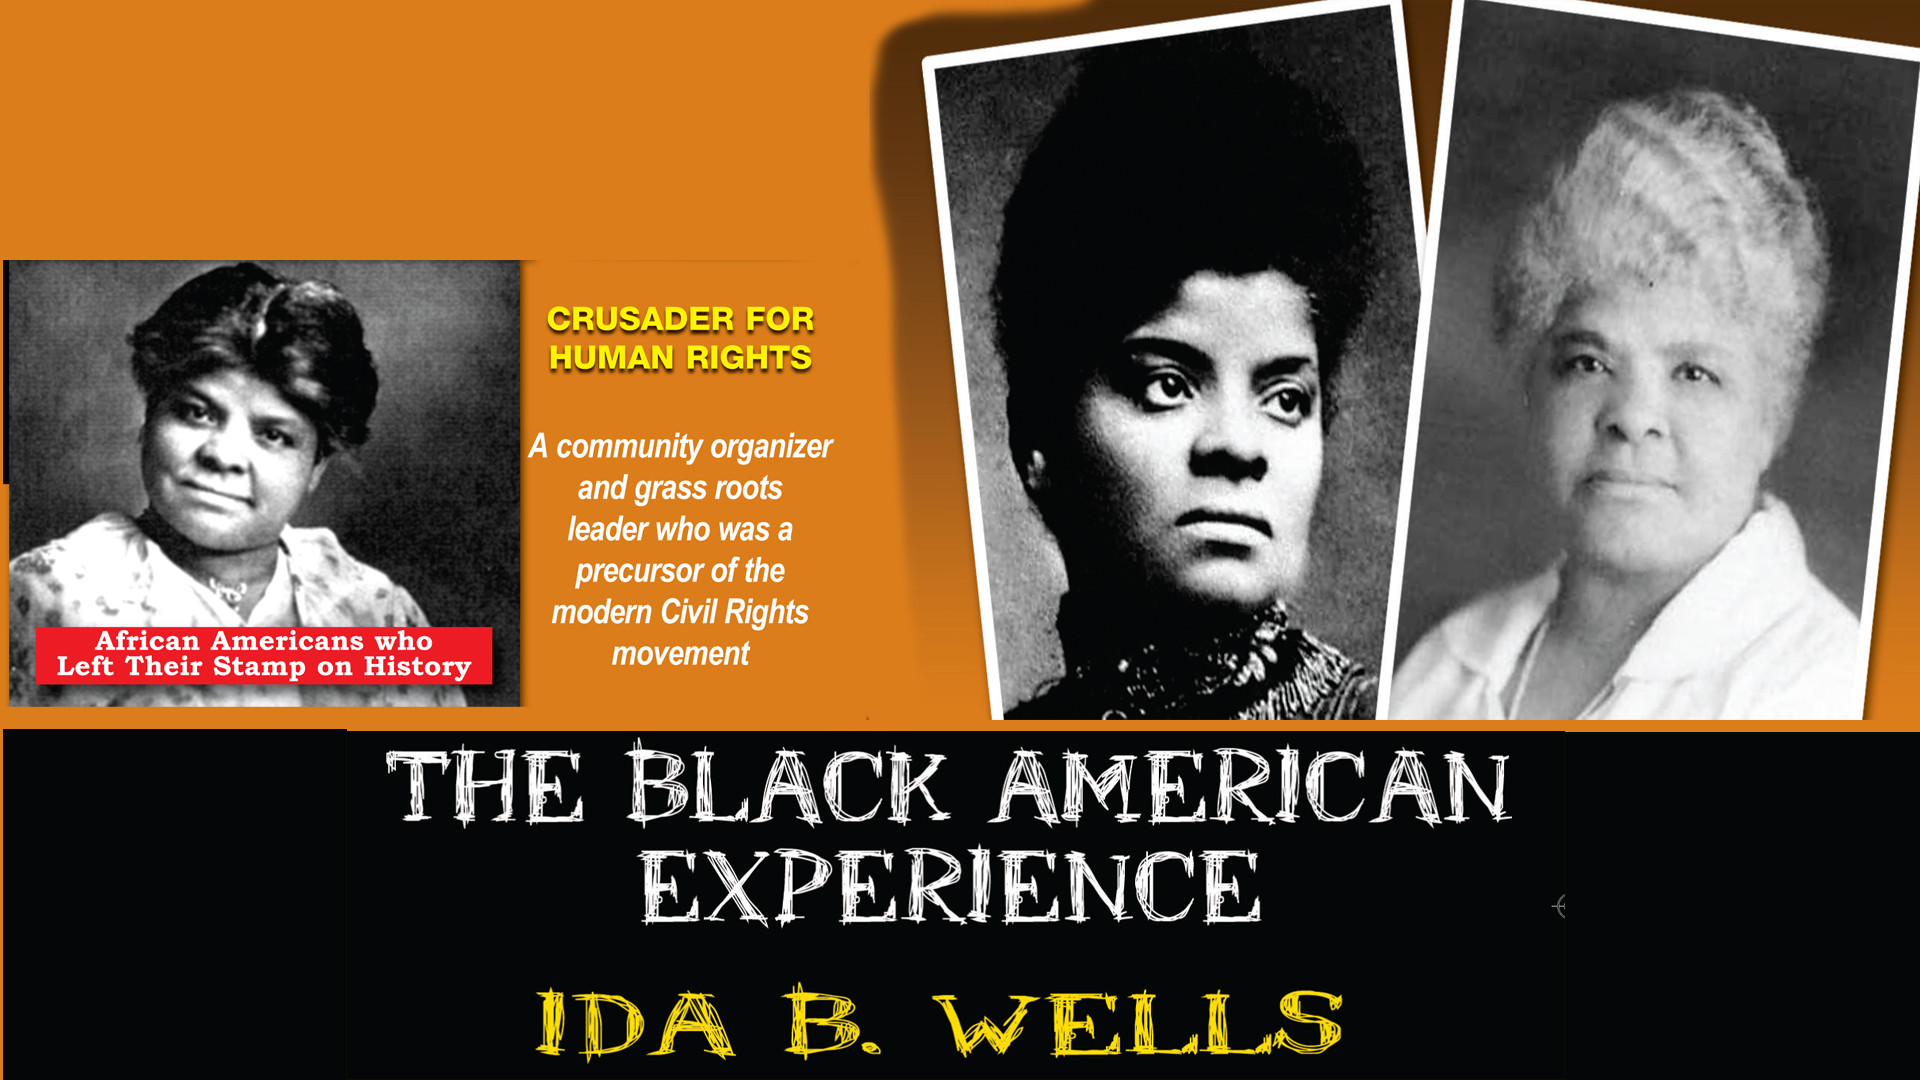 L5730 - Ida B. Wells Crusader For Human Rights